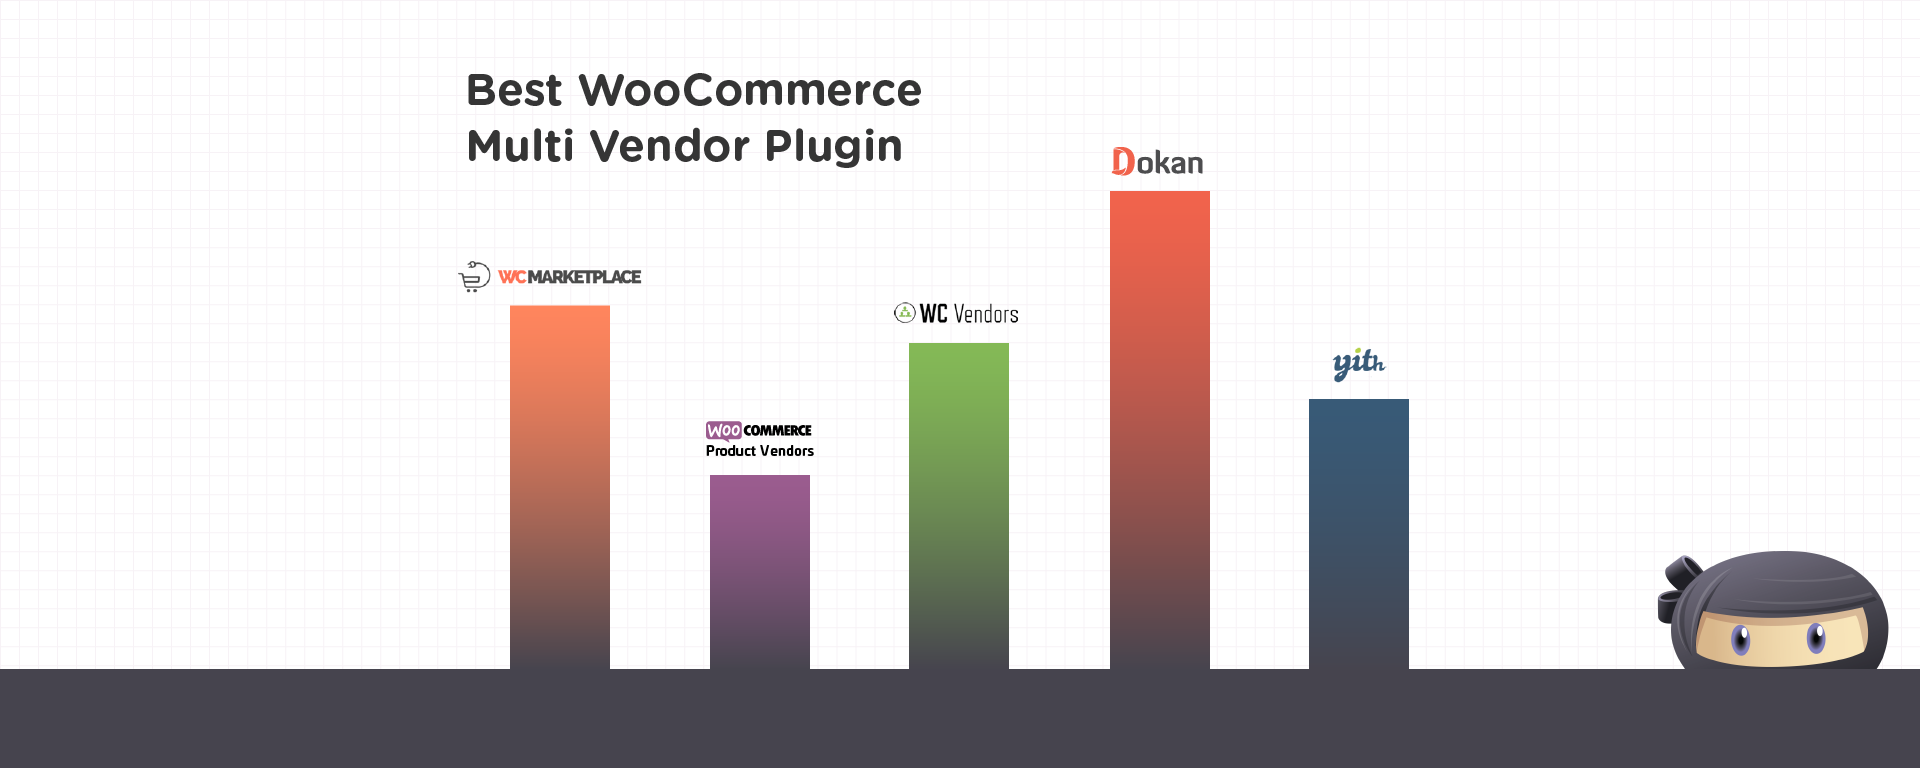 Best WooCommerce Multi Vendor Plugin For WordPress - weDevs